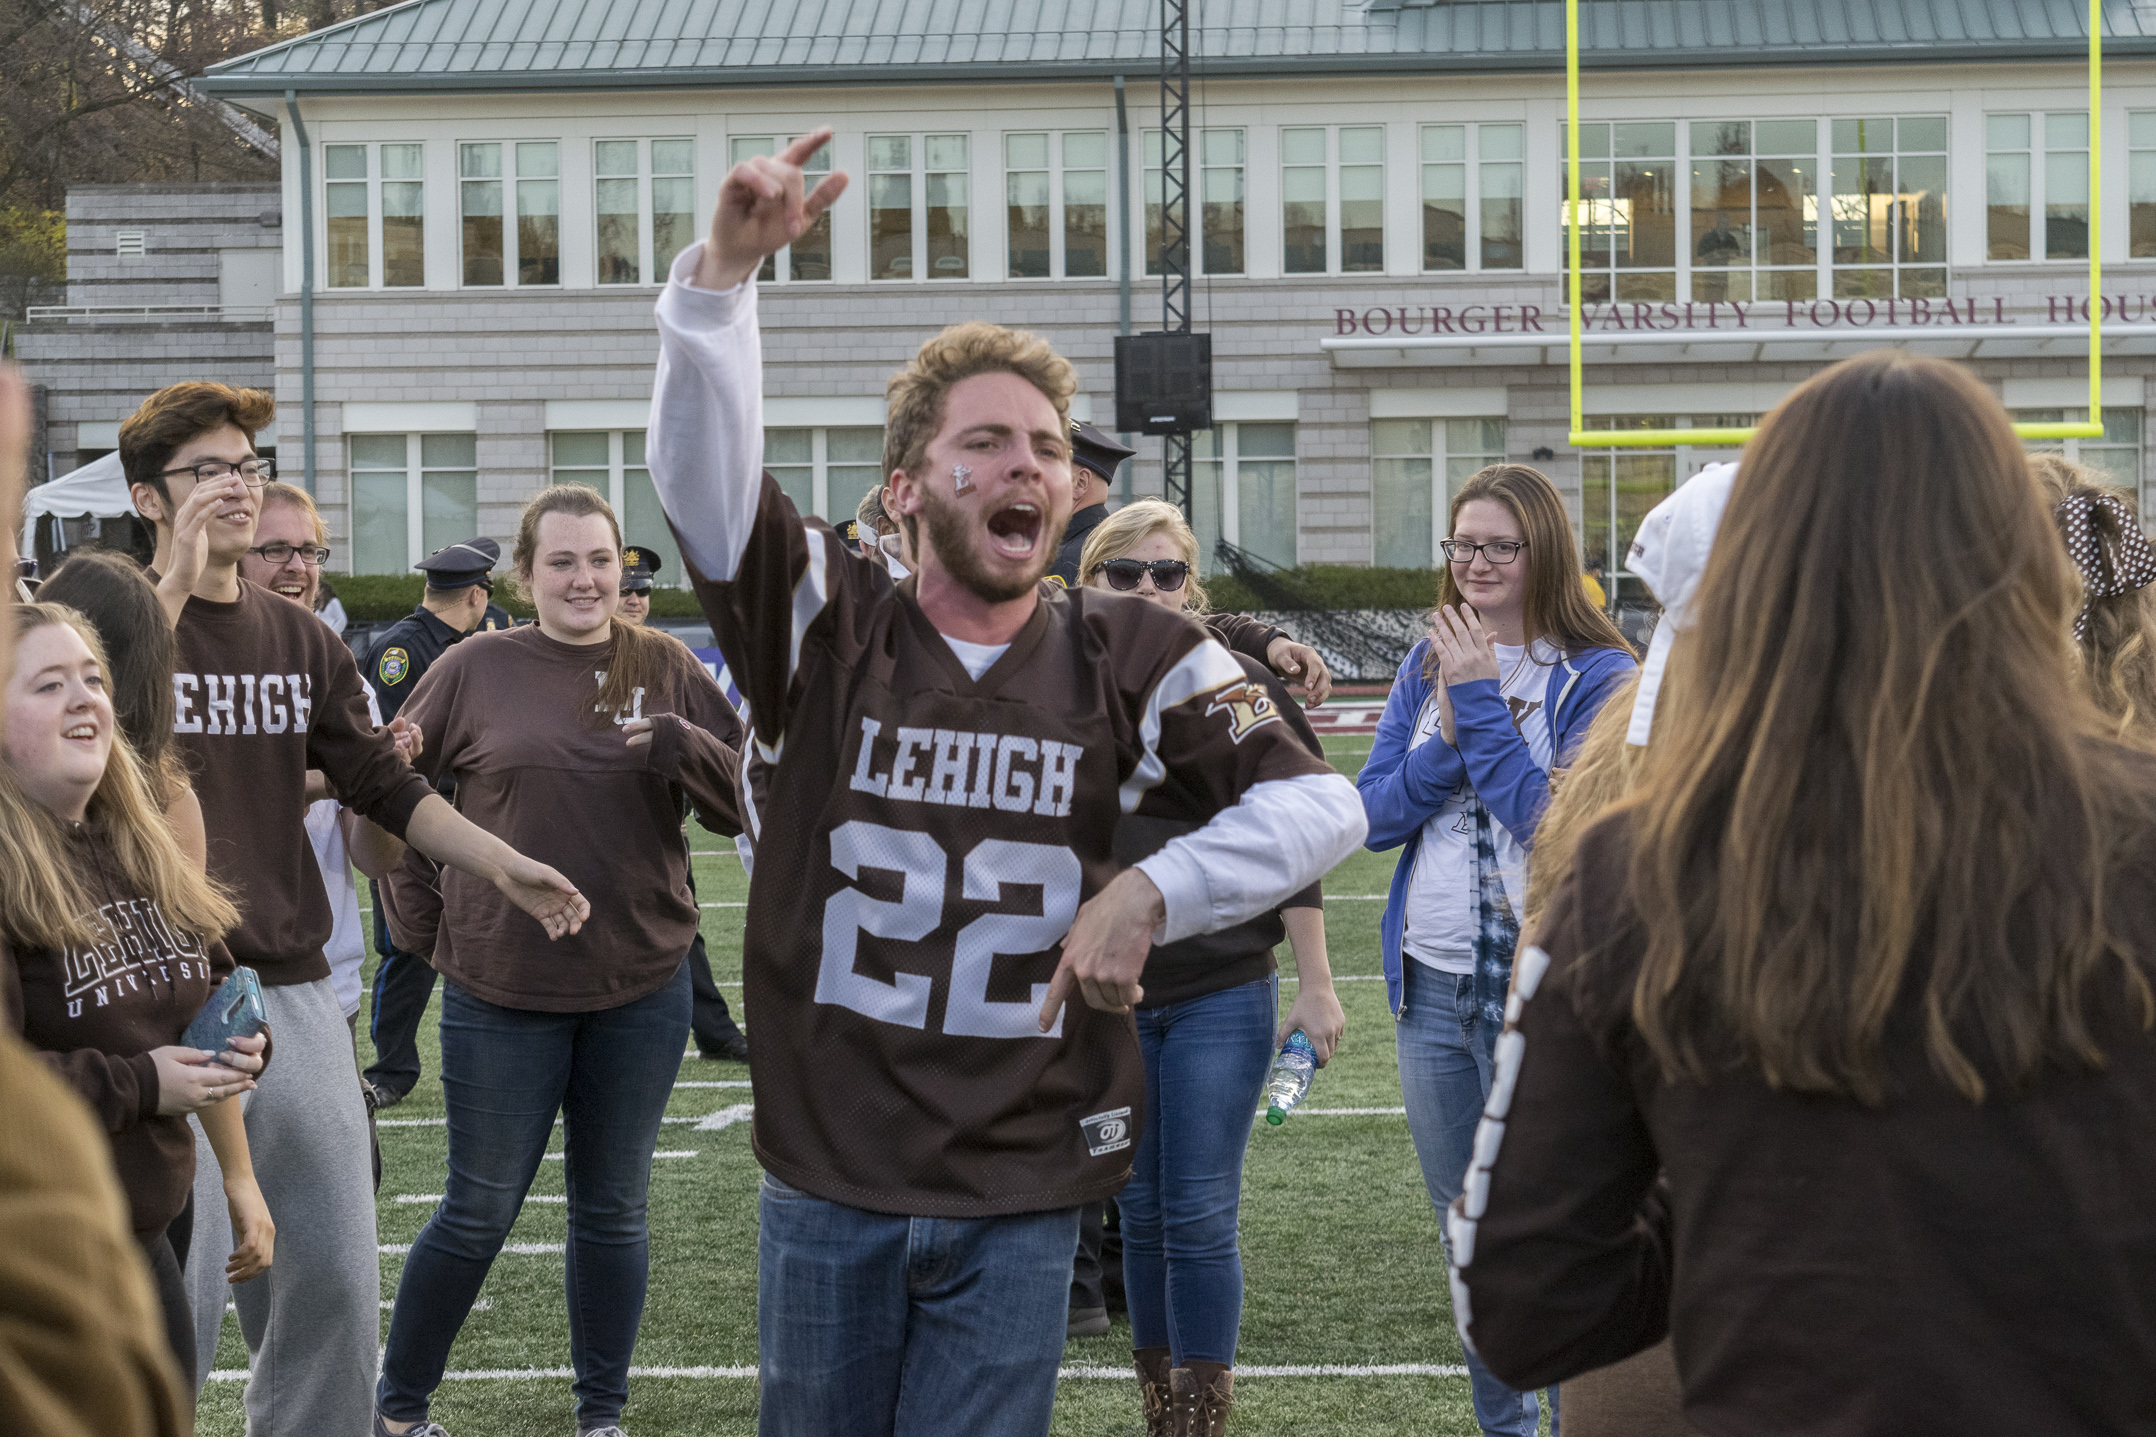 John Larson, '17, celebrates after Lehigh's victory over Lafayette on Saturday, Nov. 19, 2016, in Fisher Stadium. Students stormed the field following the win. (Roshan Giyanani/B&W Staff)